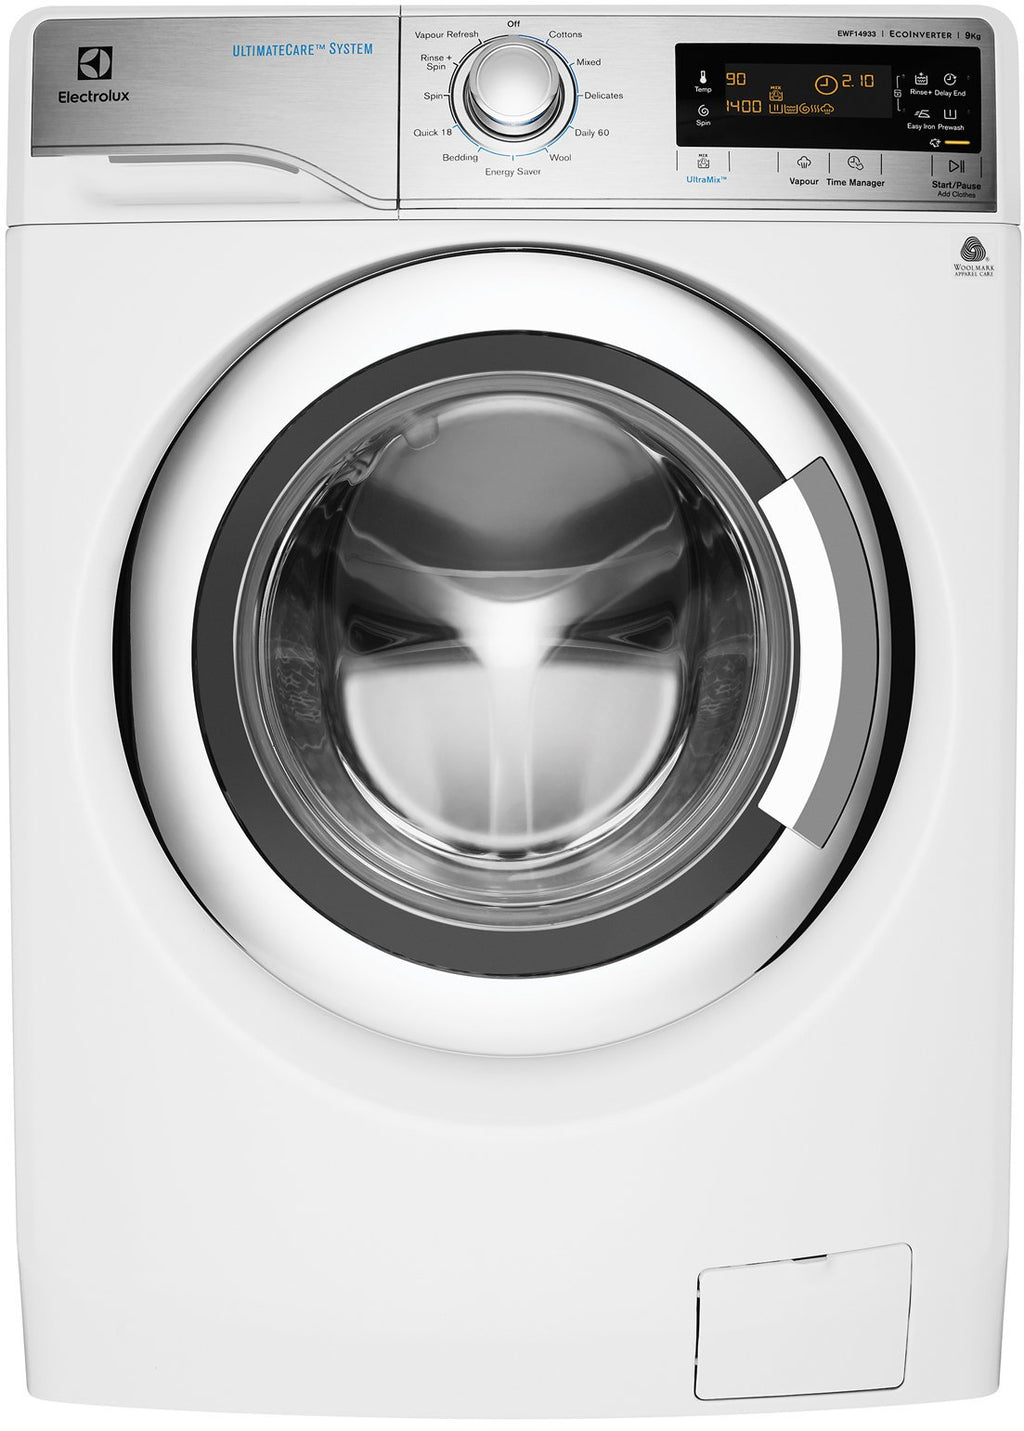 Electrolux Front Load Washer 9 KG - Brisbane Home Appliances